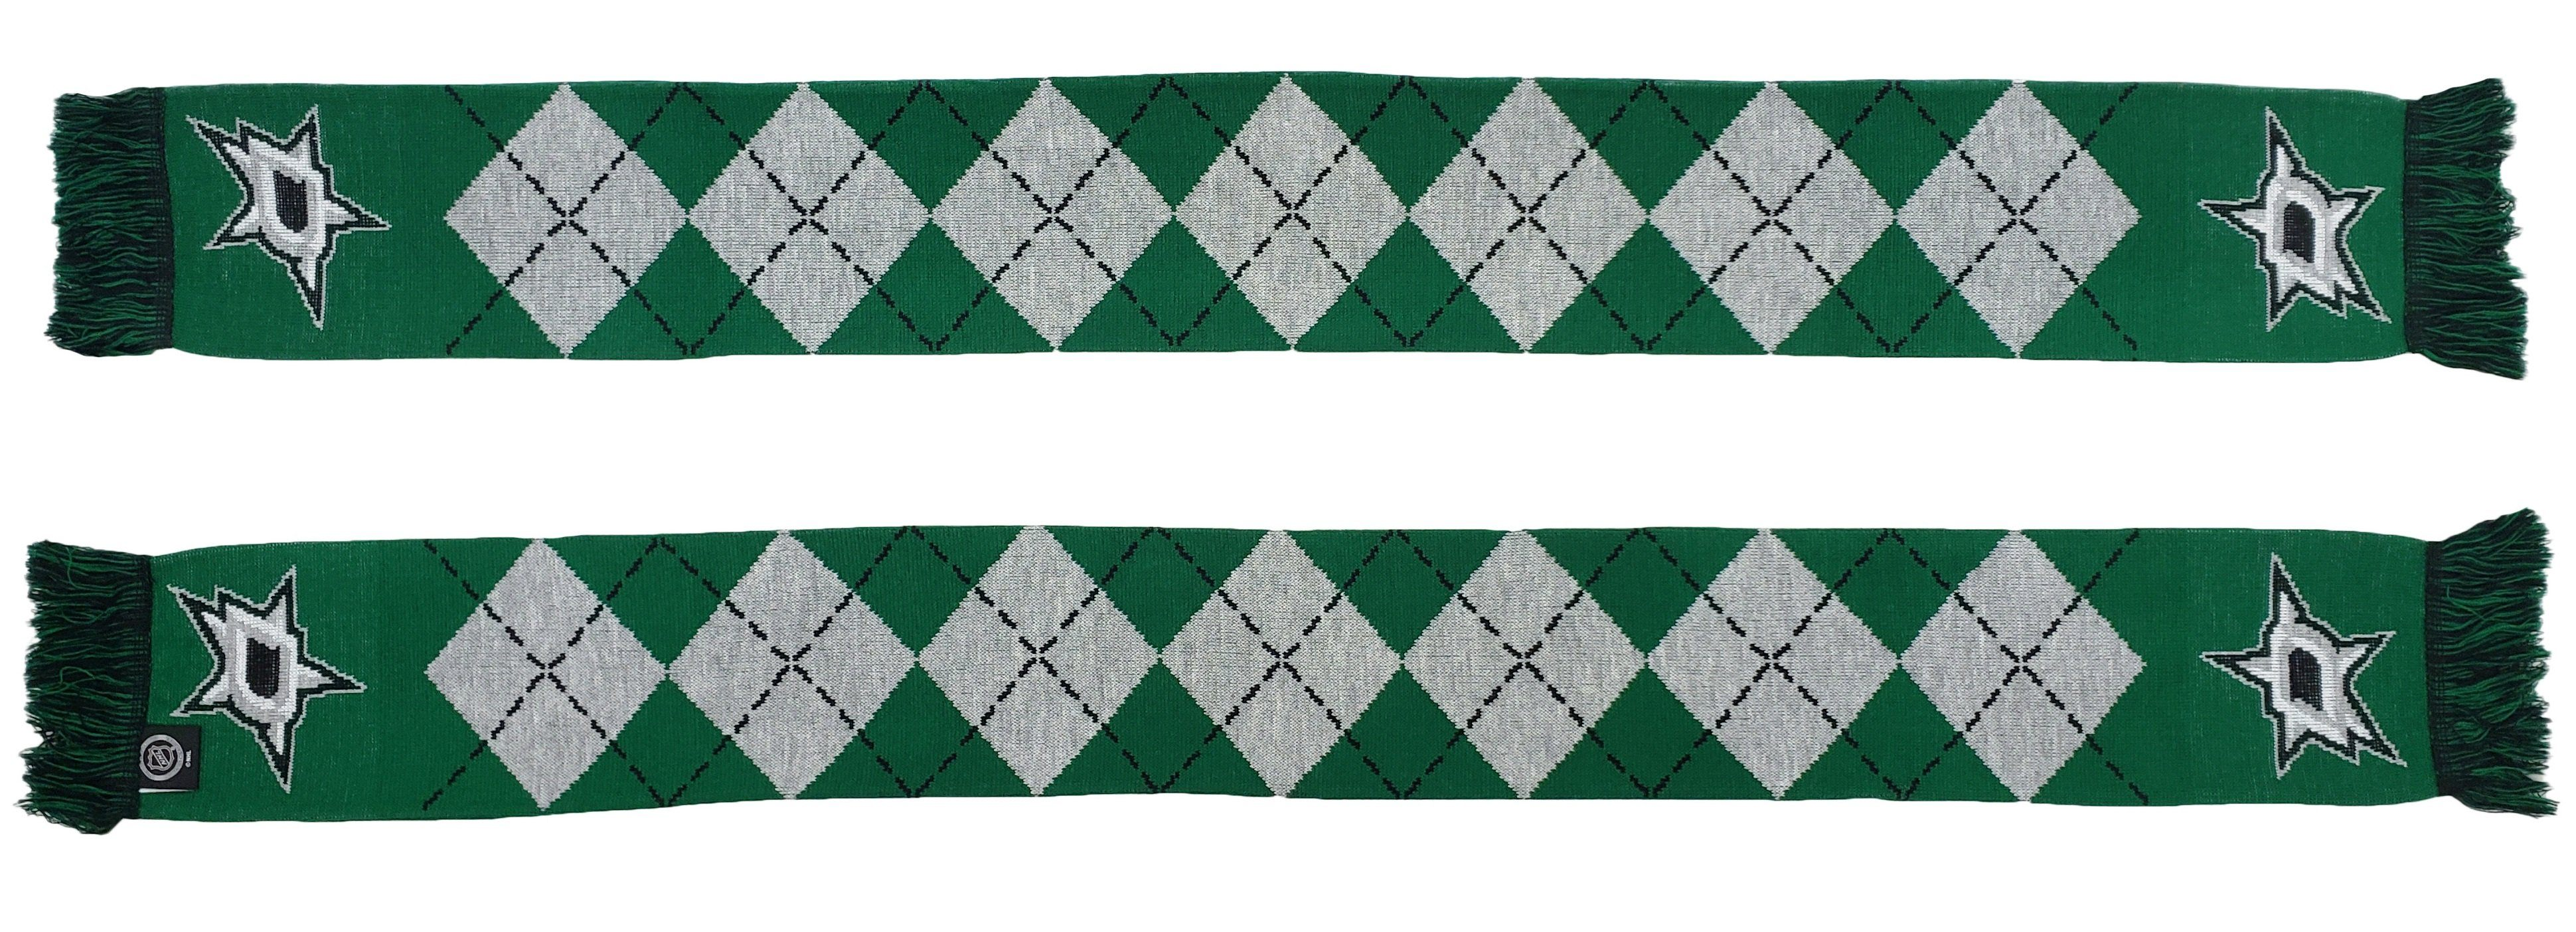 DALLAS STARS SCARF - Argyle